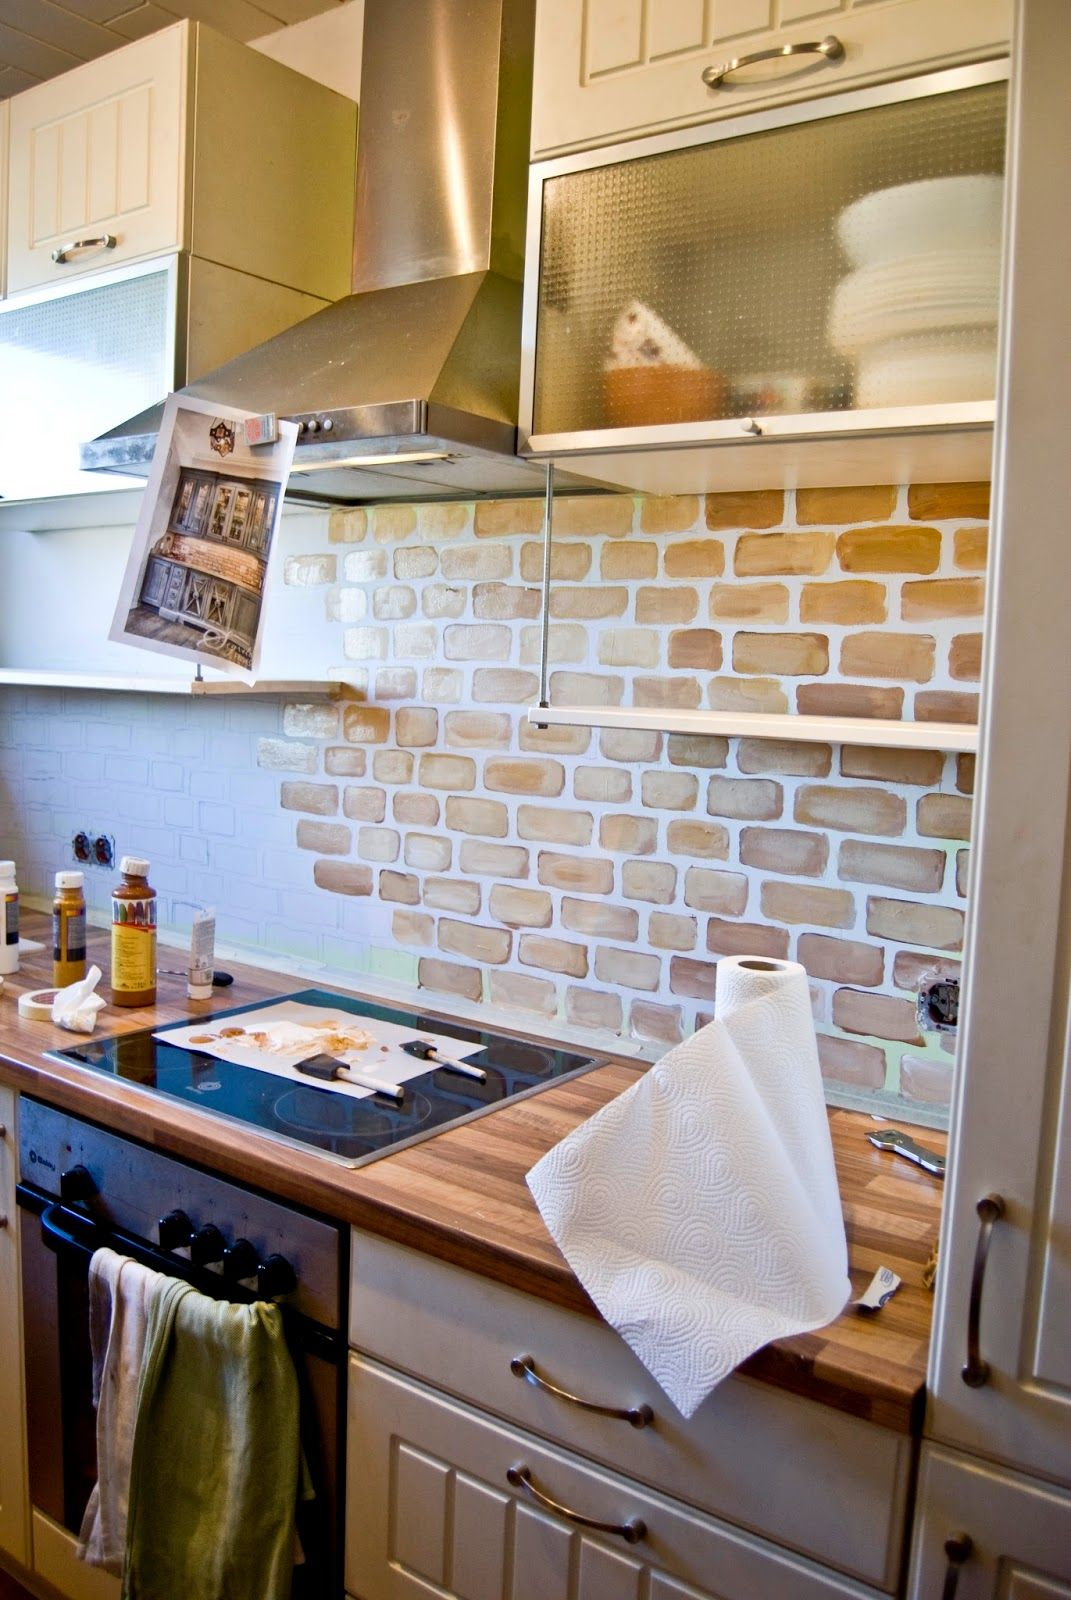 enchanting faux brick backsplash kitchen | small kitchen with painted faux brick backsplash - Pudel ...